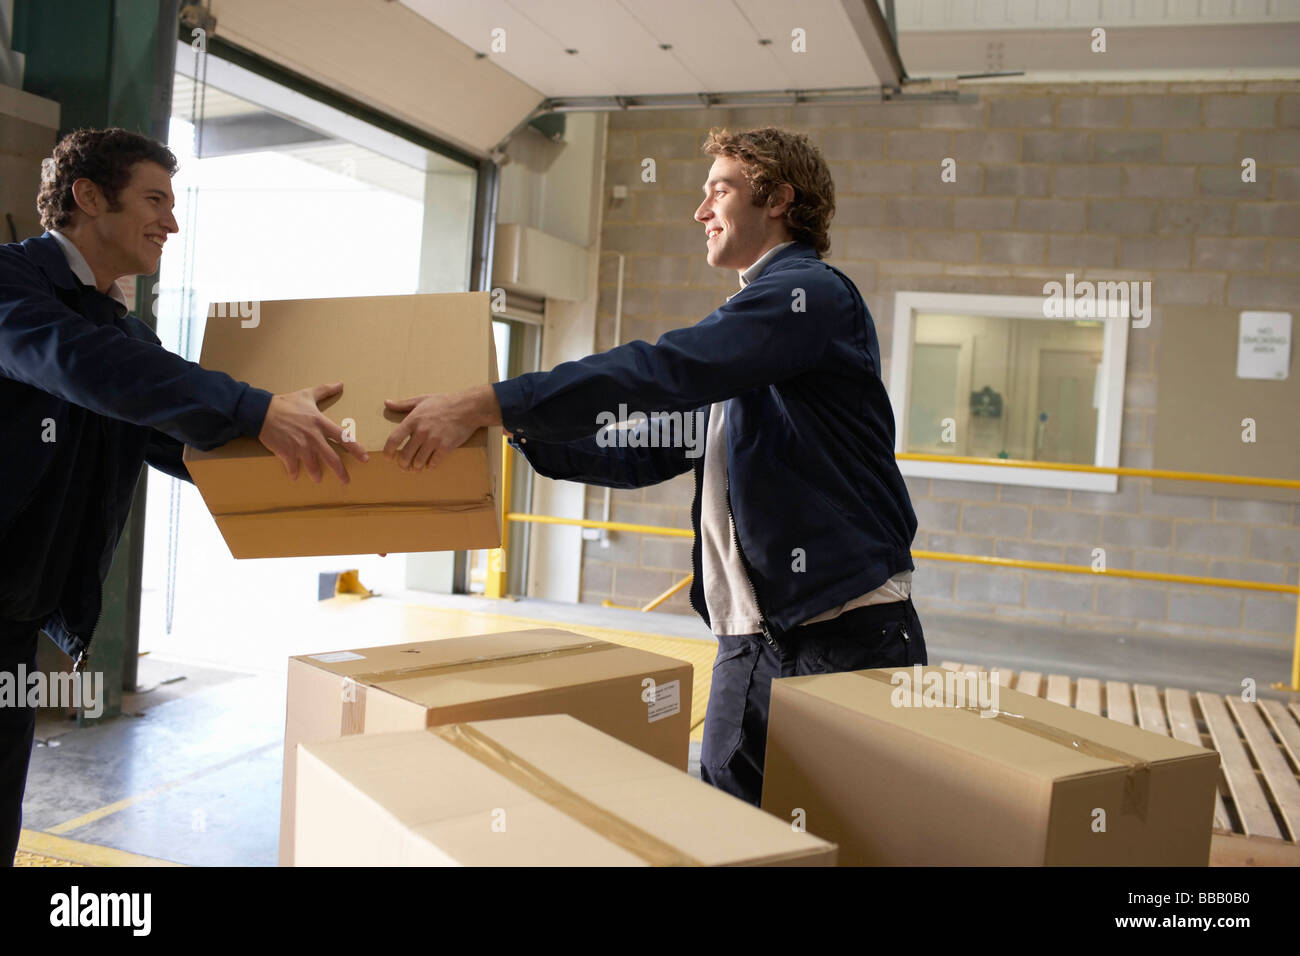 Two workers passing box - Stock Image